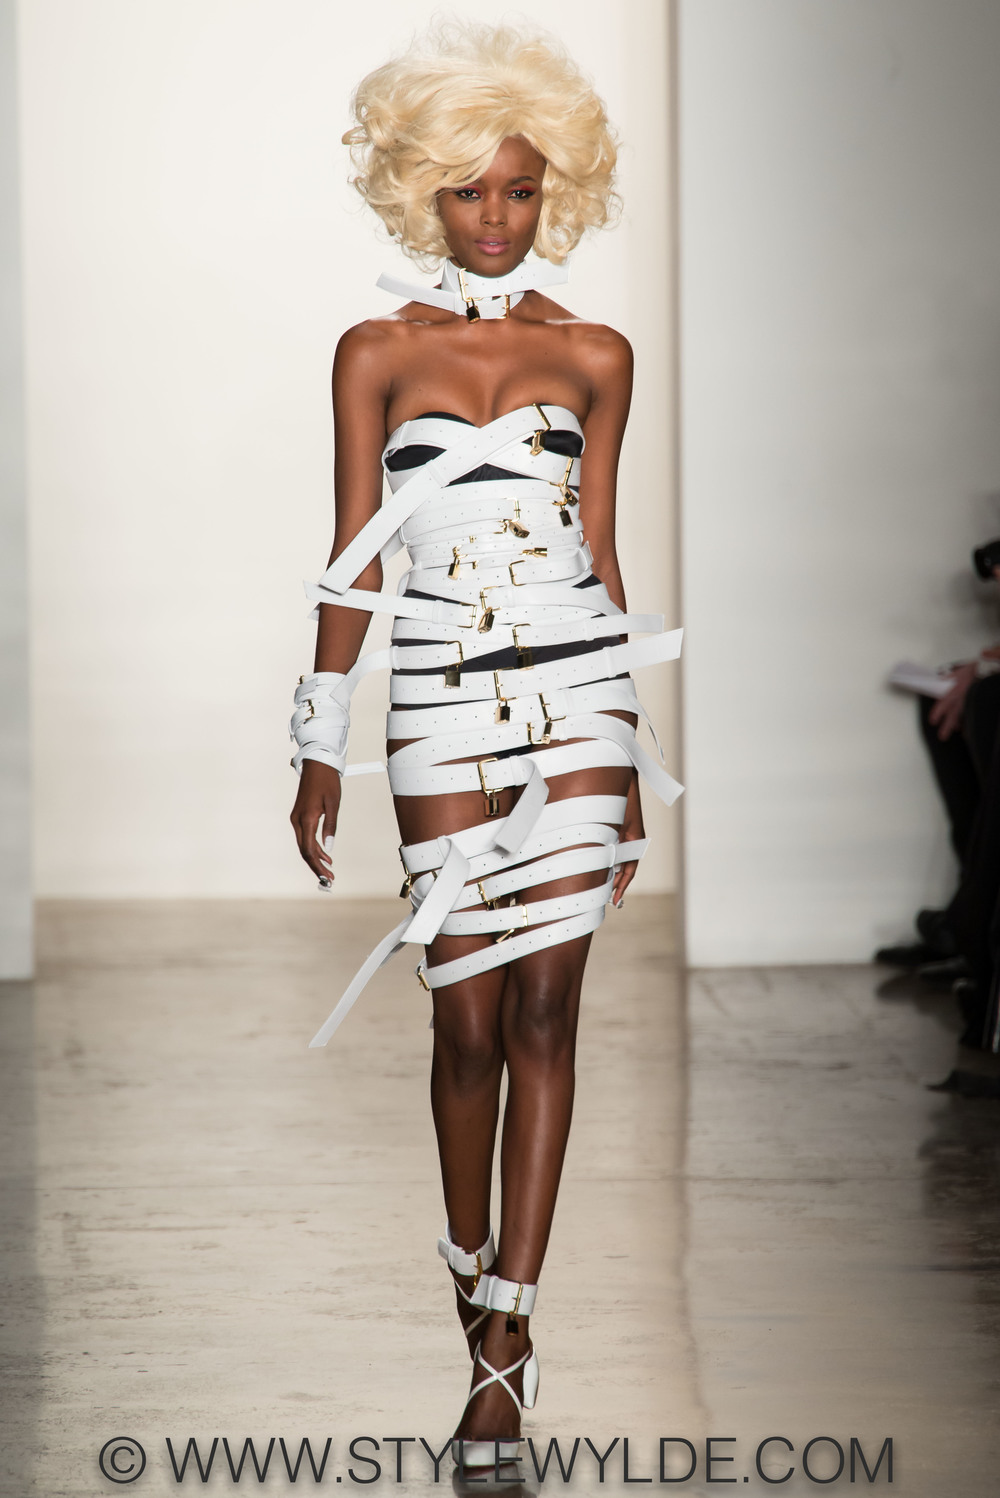 stylewylde_The_Blonds_FW_2013-3.jpg